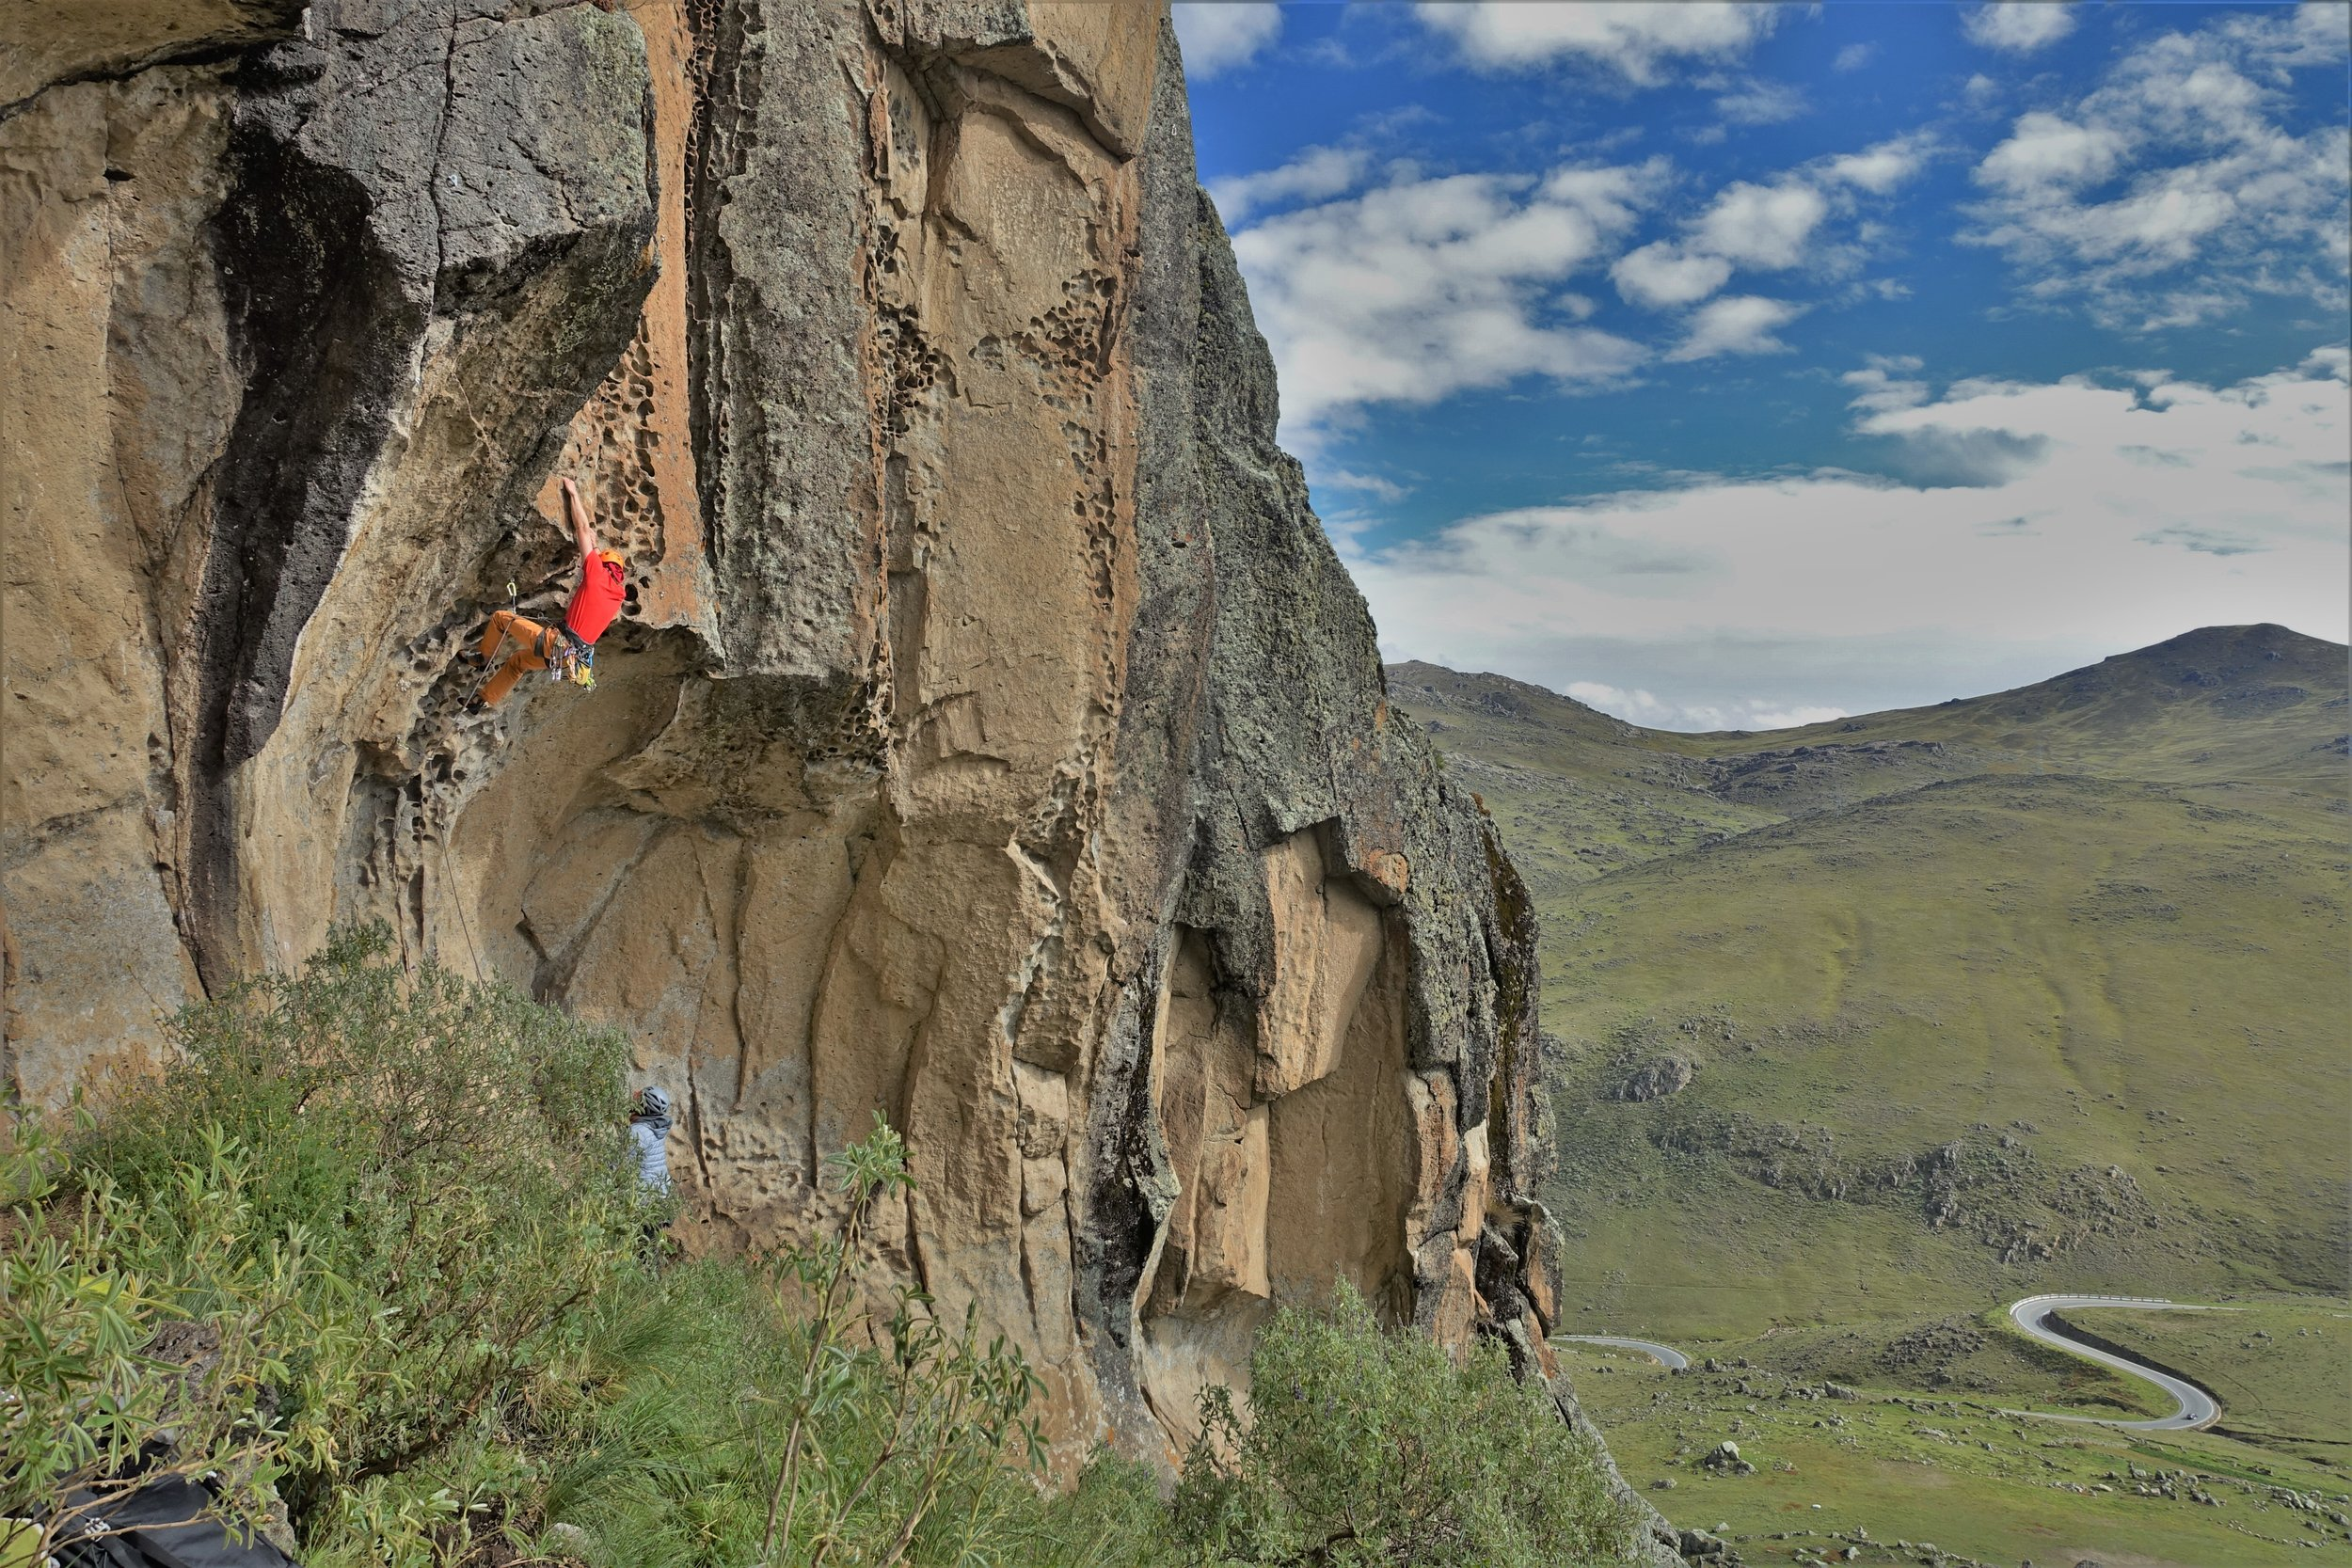 Enjoying some steep climbing at an altitude of 4,000m sure takes your breath away!